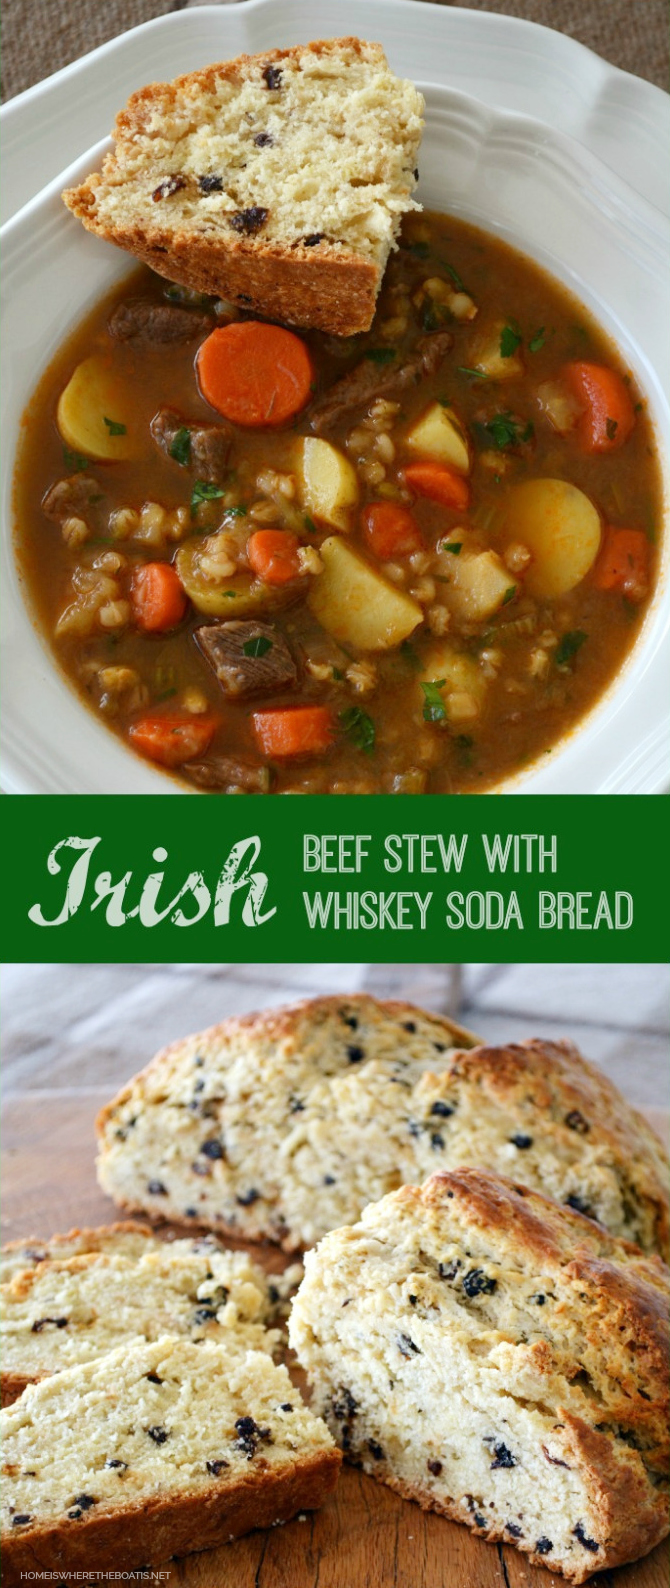 Irish Beef Stew with Irish Whiskey Soda Bread! A delicious stick-to-your-ribs Irish Stew and soda bread recipes | homeiswheretheboatis.net #StPatricksDay #recipe #Irish #sodabread